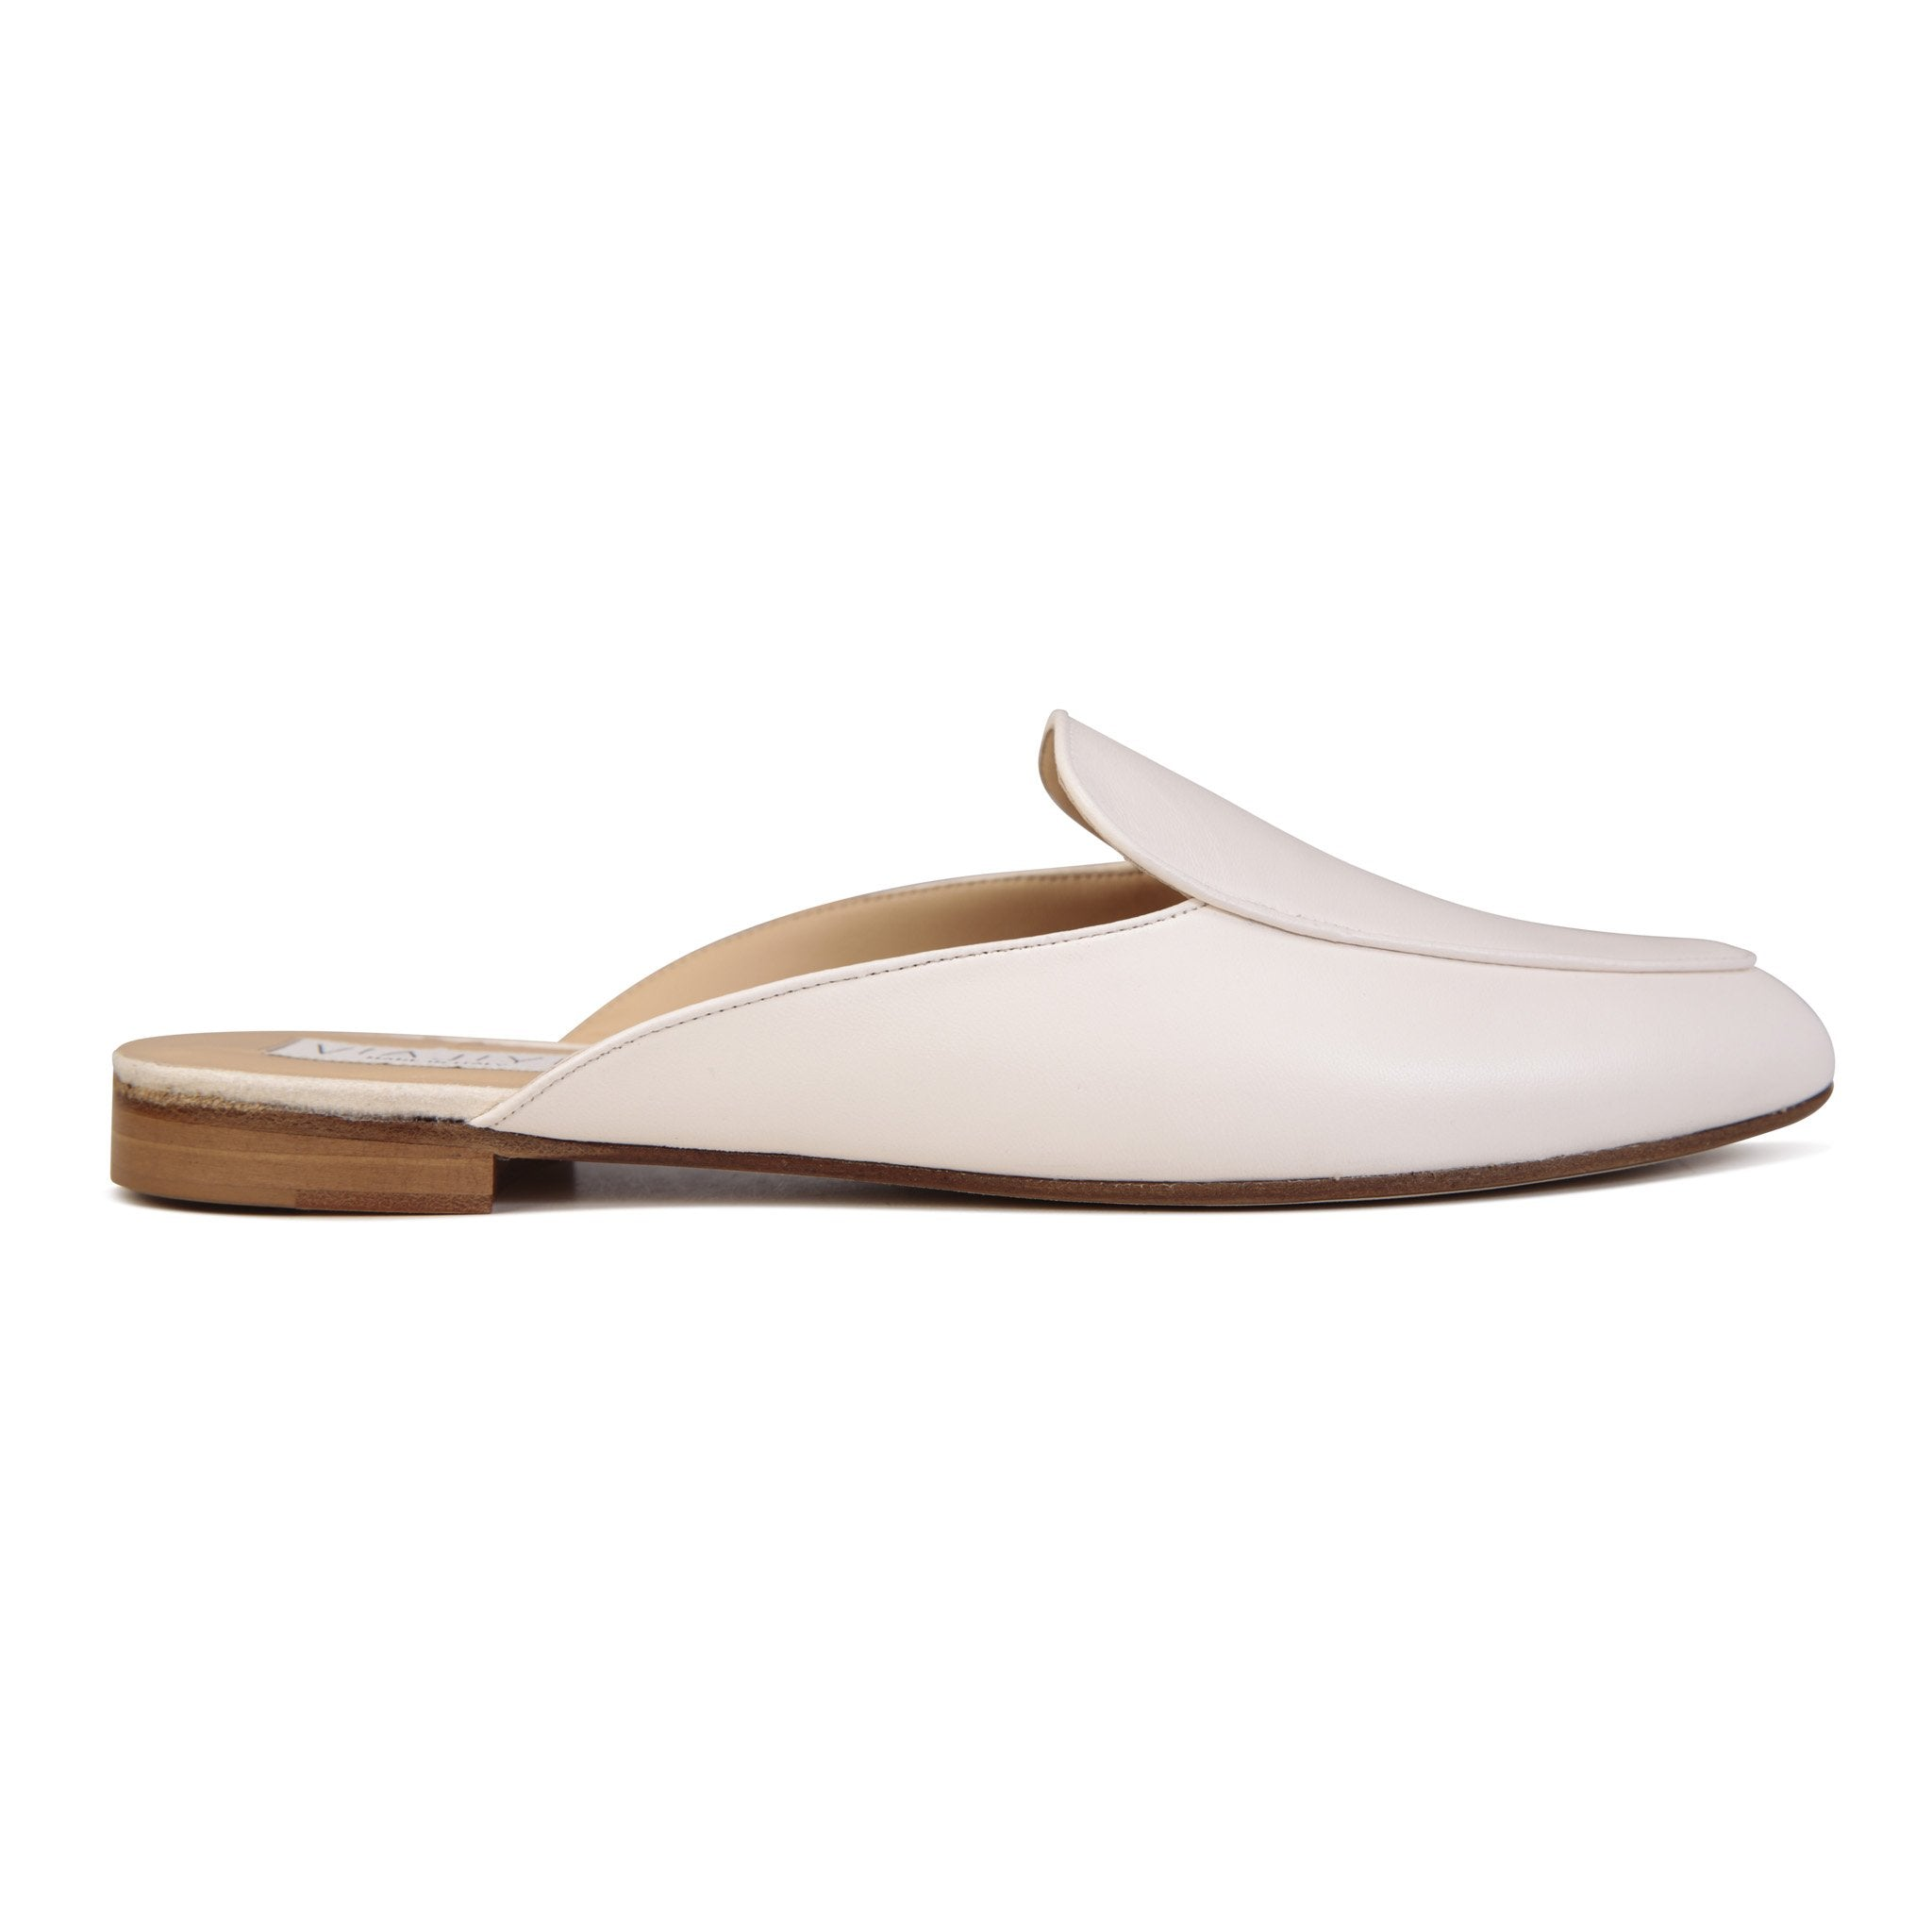 ISEO - Nappa Bianco, VIAJIYU - Women's Hand Made Sustainable Luxury Shoes. Made in Italy. Made to Order.